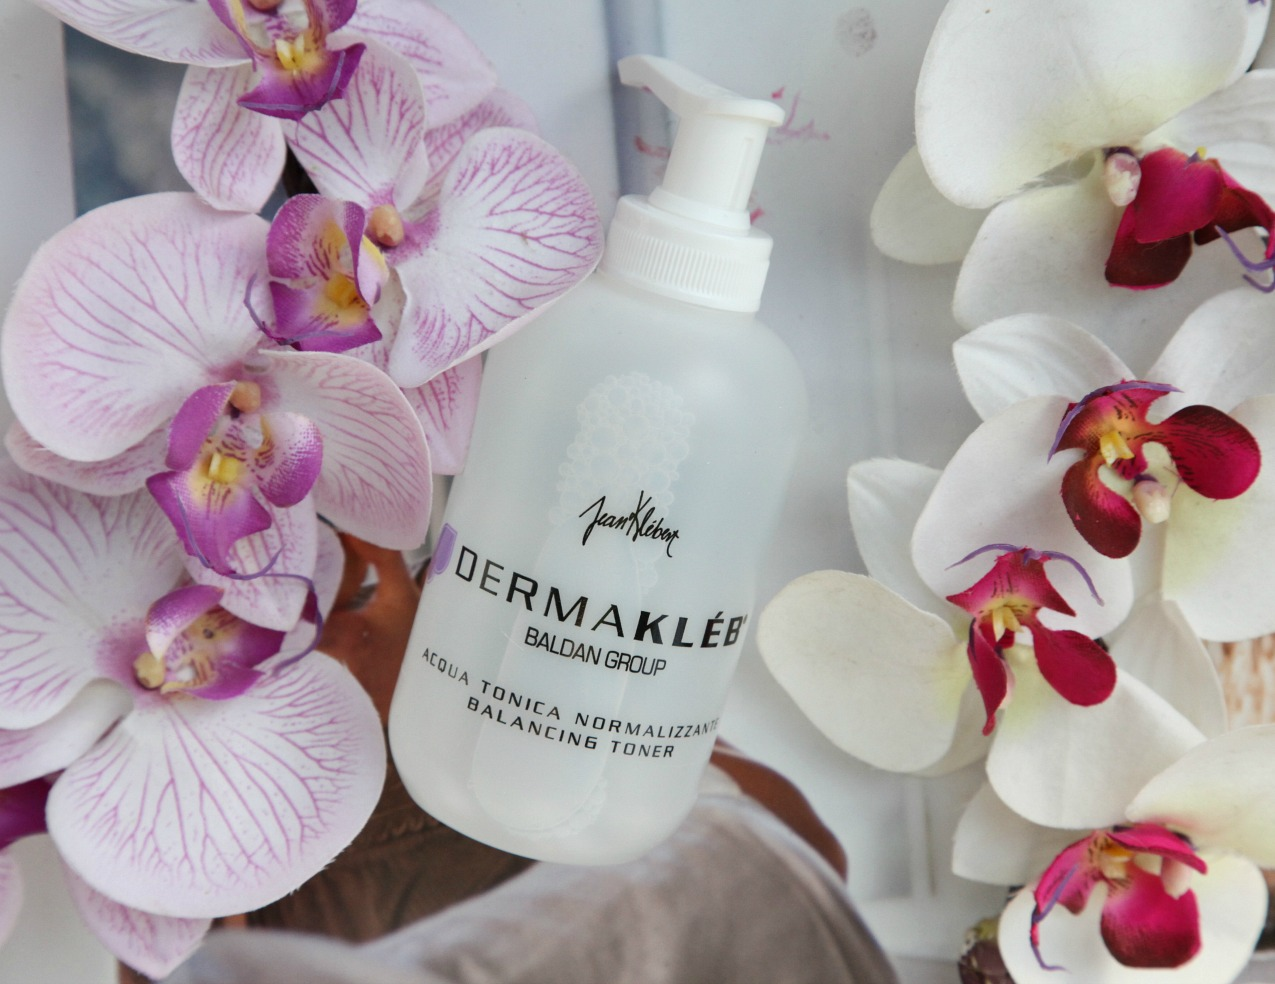 Skincare essentials: Jean Klebert by Baldan Group, alessia milanese, thechilicool, fashion blog, fashion blogger